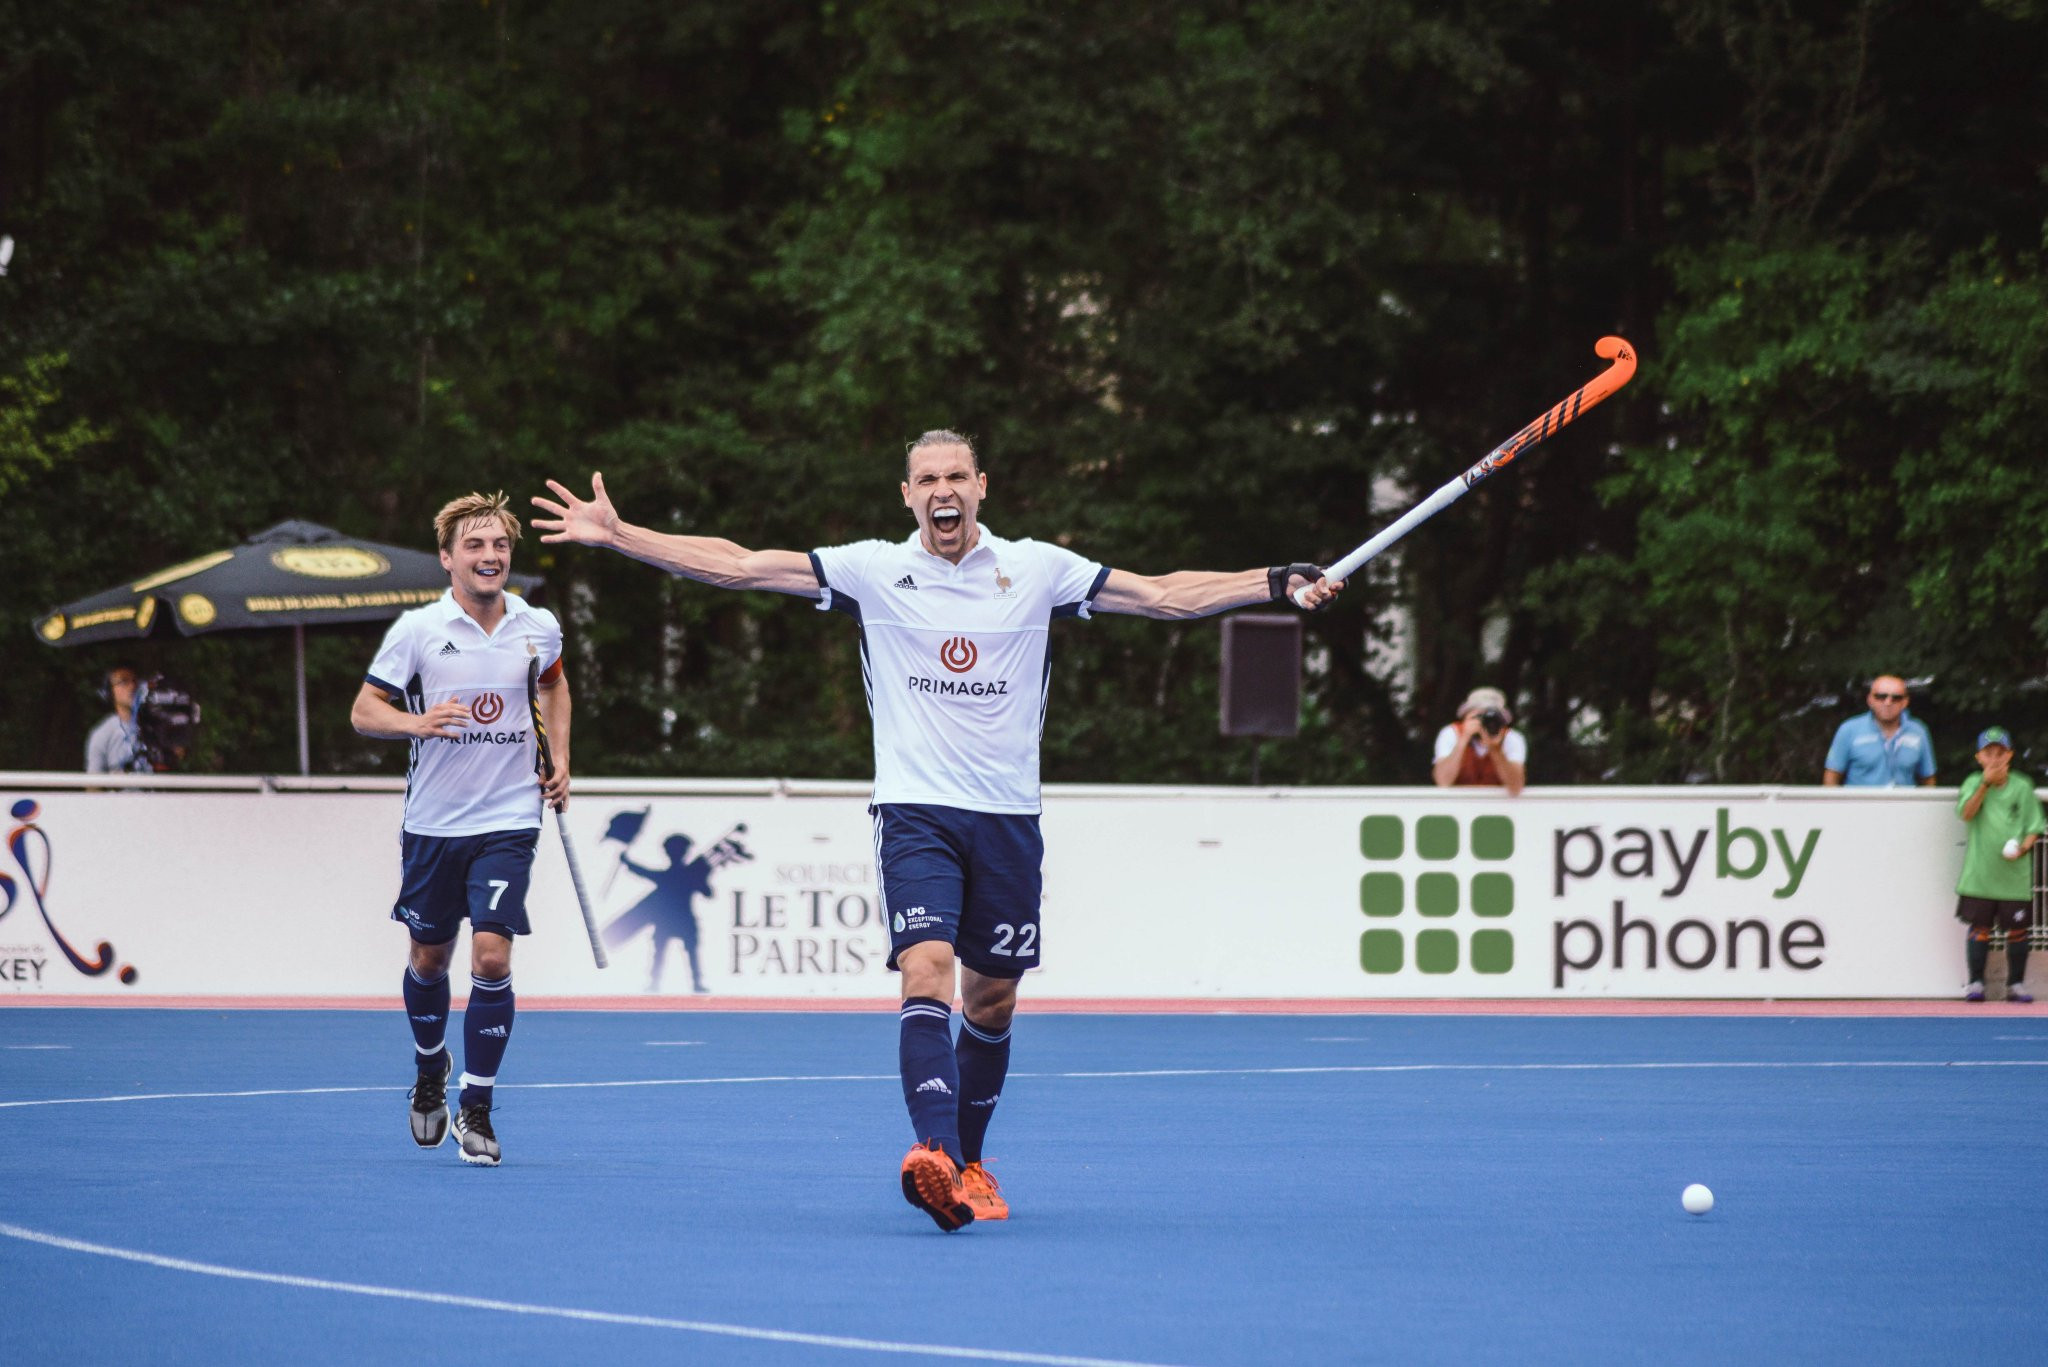 France victorious on home soil at FIH Series Finals in Le Touquet